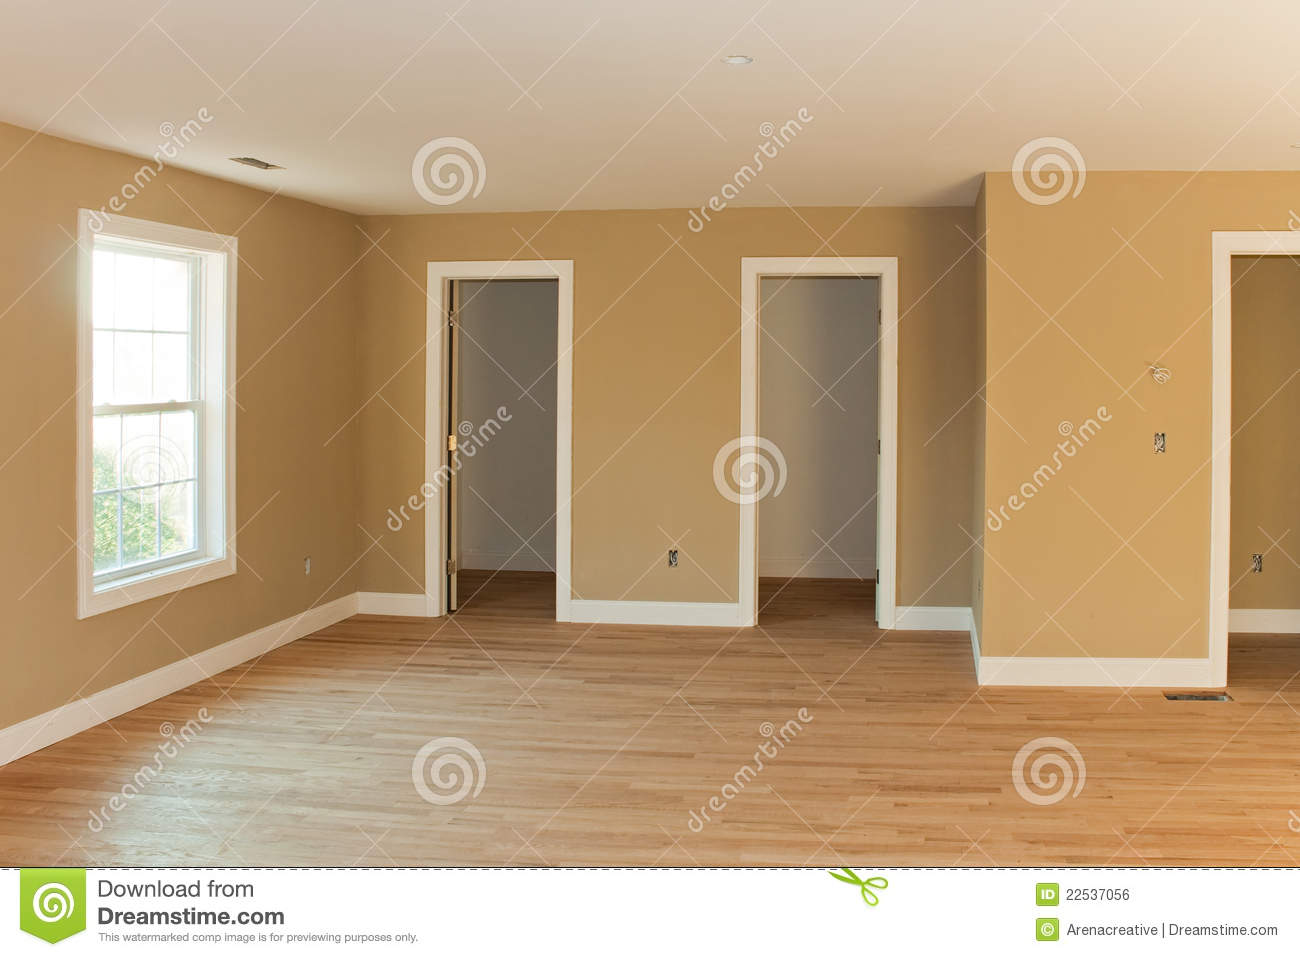 Brand new home room interior royalty free stock image Home interior brand